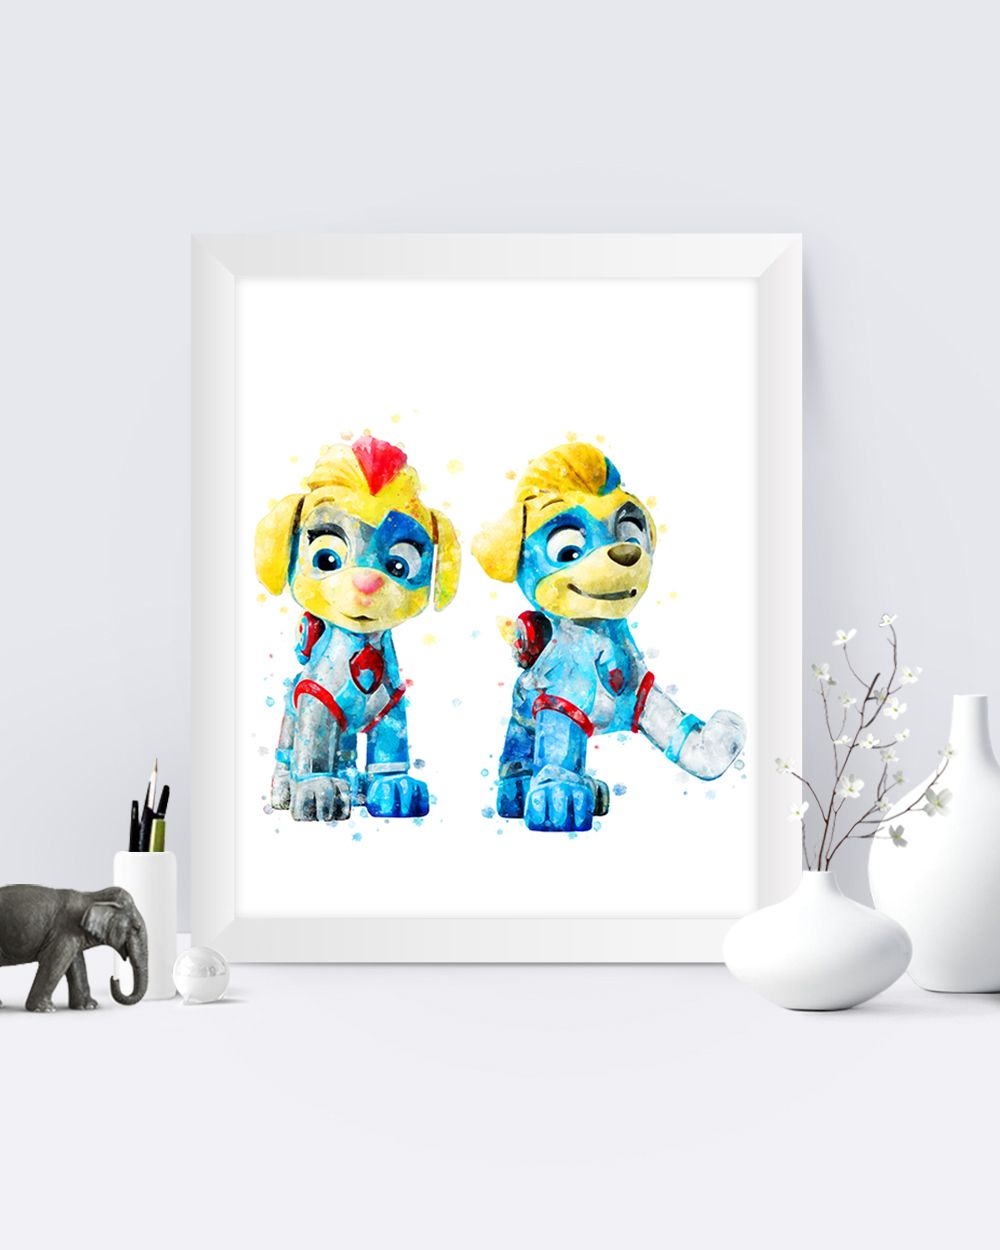 Paw Patrol Print Mighty Pups Tuck And Ella Printable Poster Tuck And Ella Watercolor Paw Patrol Painting Kids Room Decor In 2020 Painting For Kids Kids Room Paint Kid Room Decor